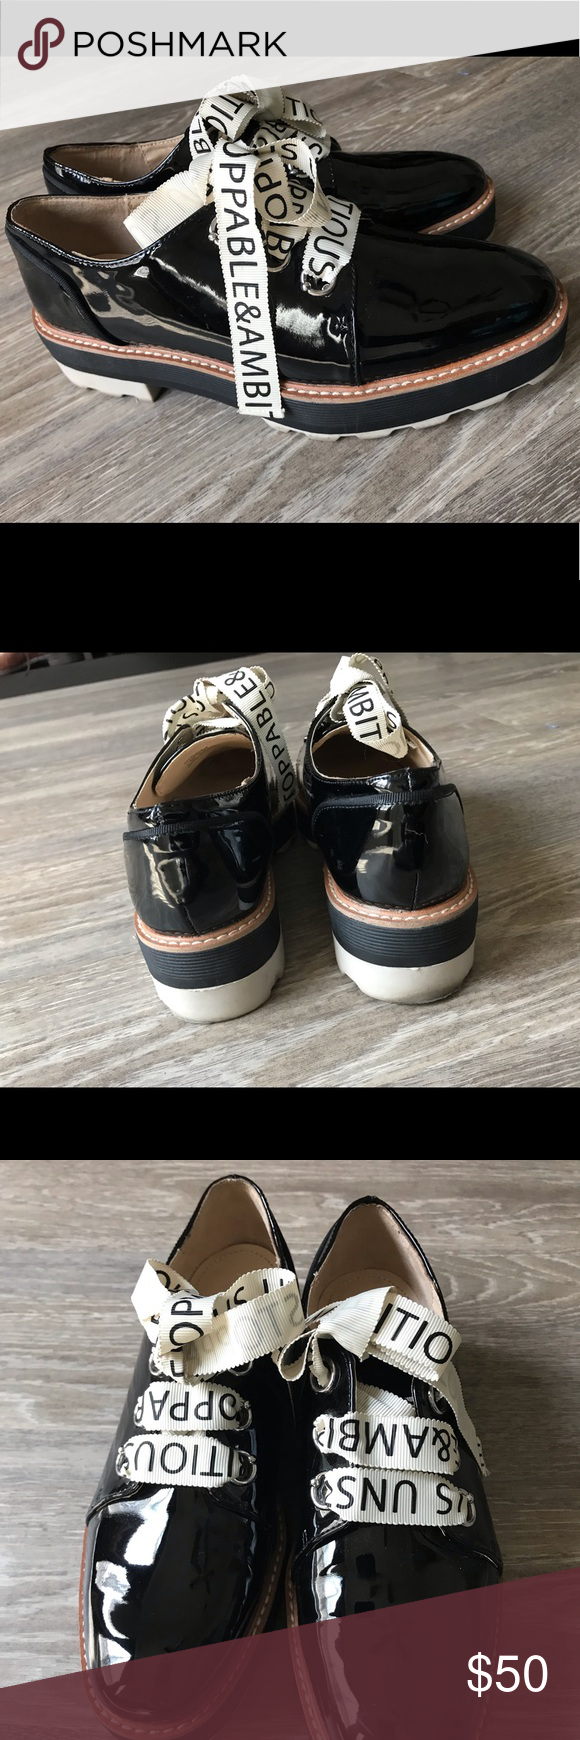 ZARA CLASSIC SHOES Very stylish and elegant used once only size 7 They go with e…